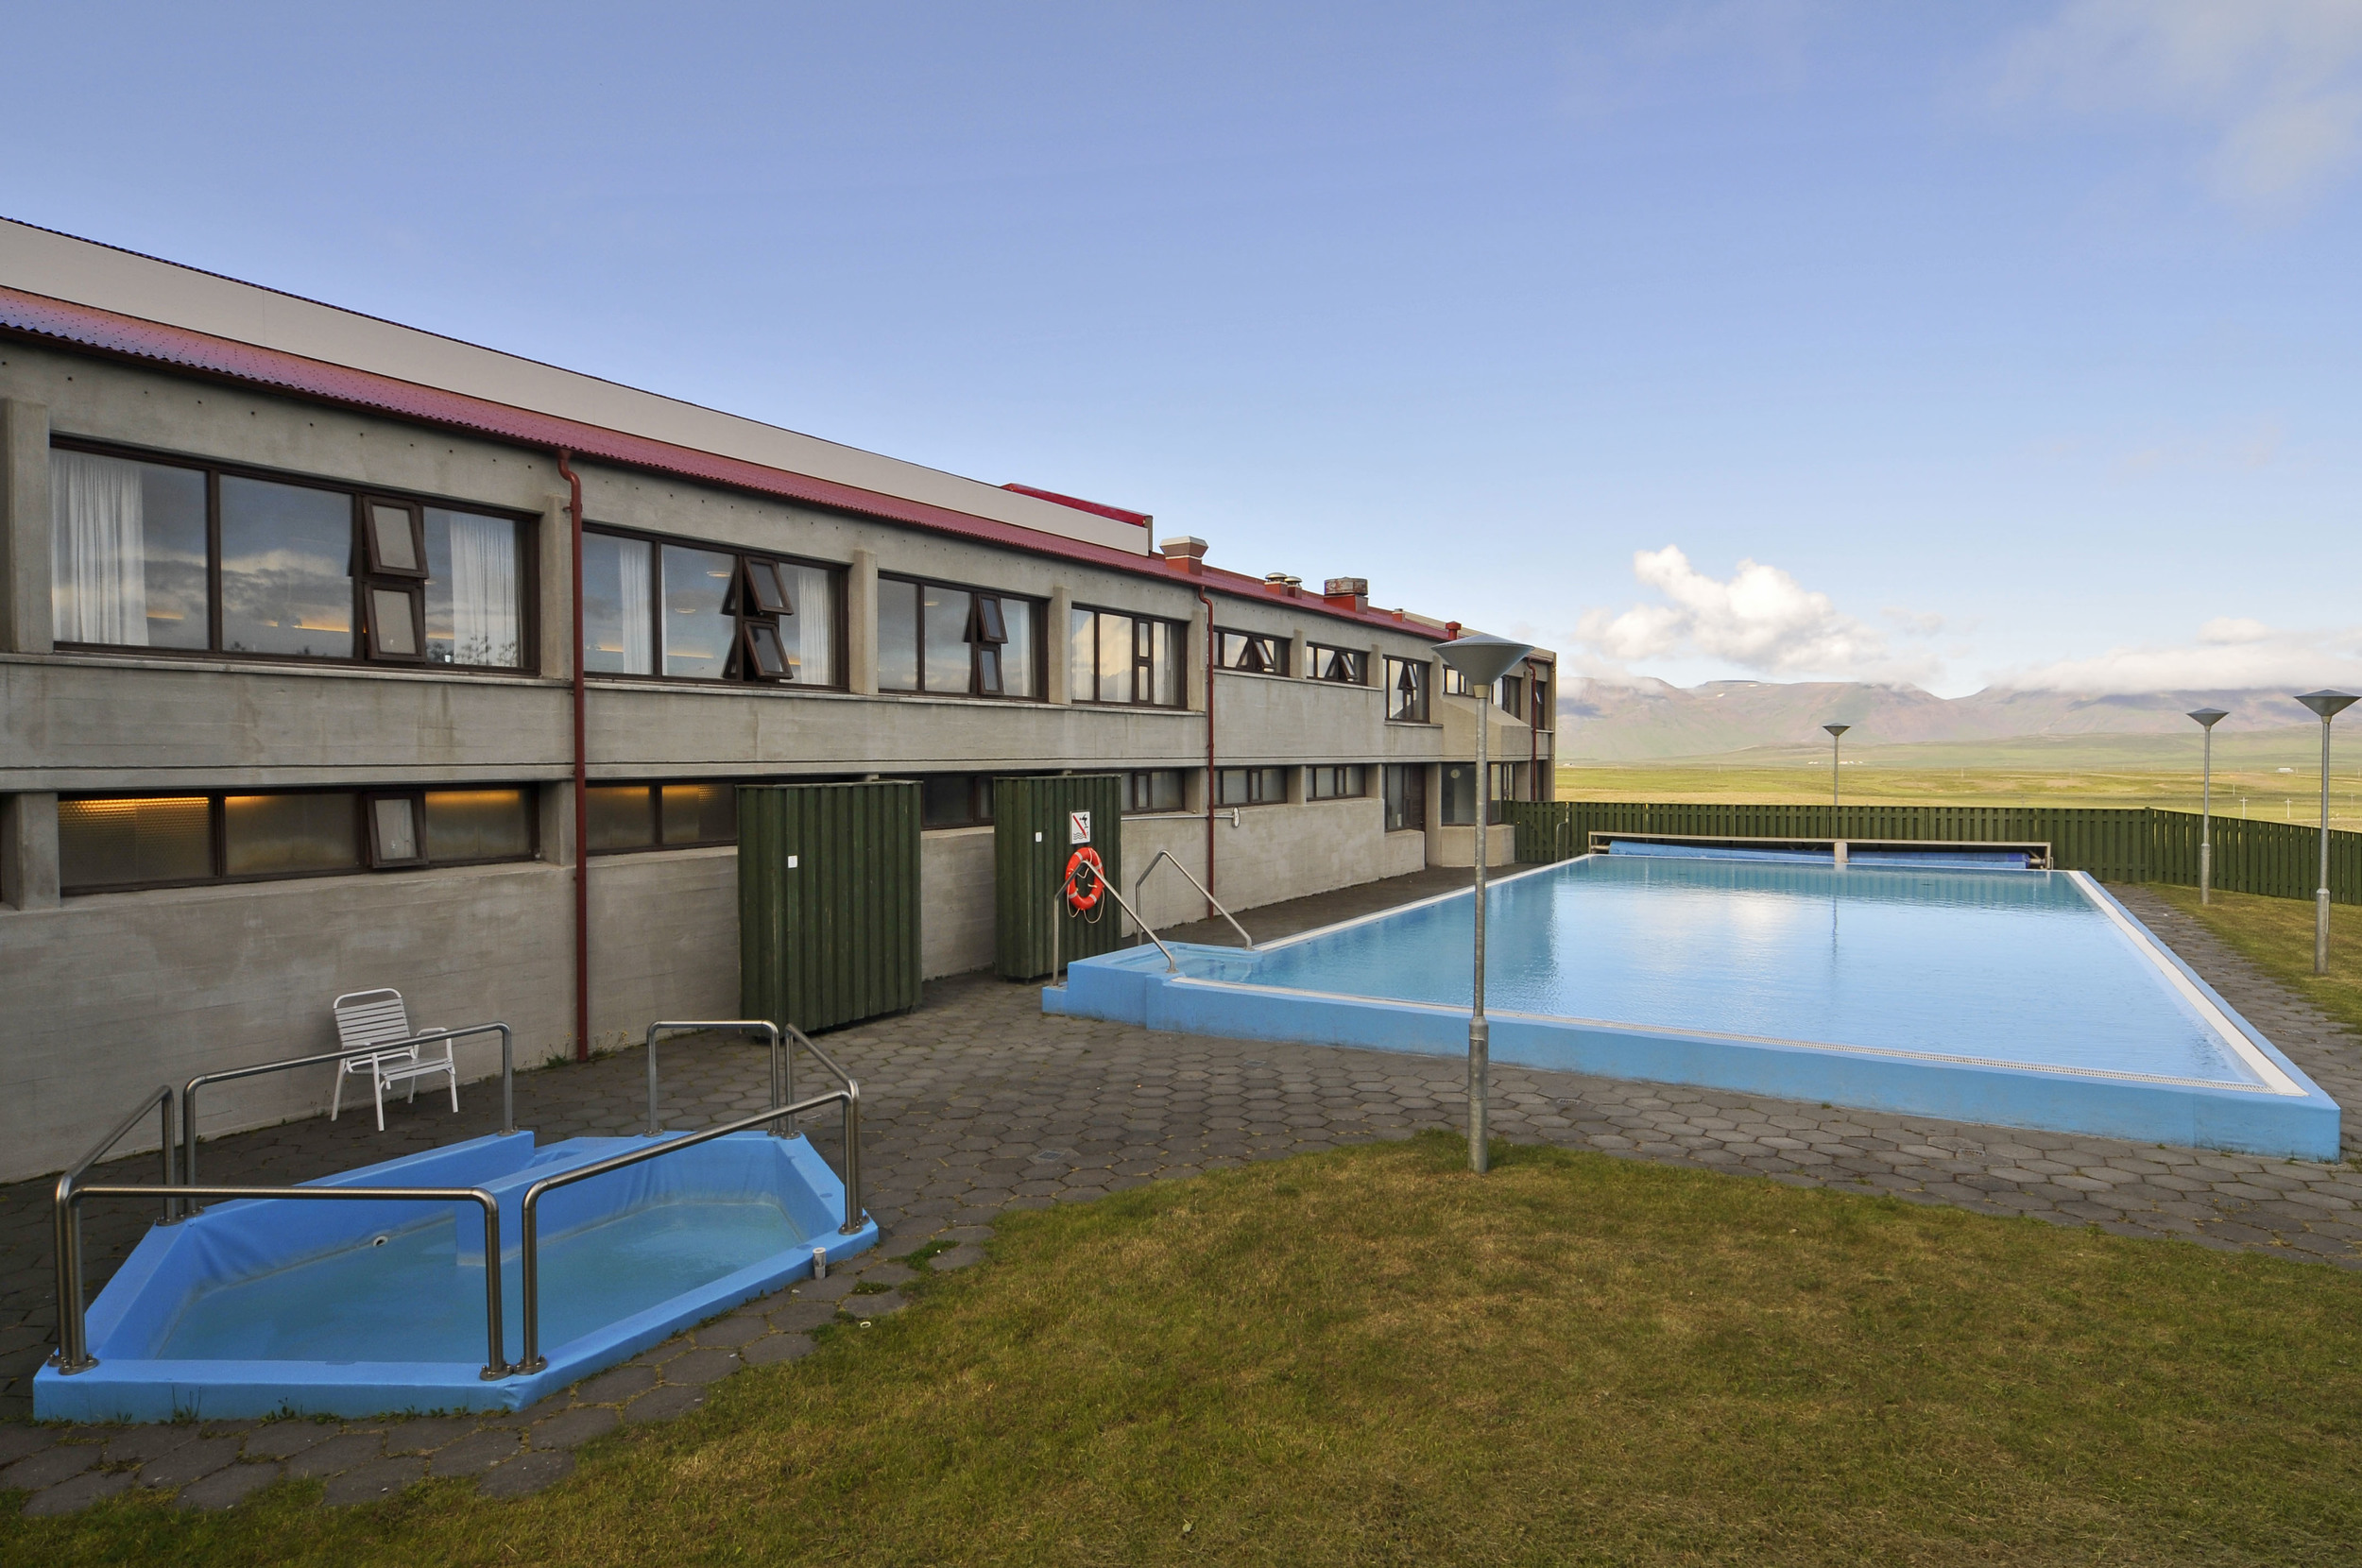 The heated swimming pool and hot tub are available in summer.